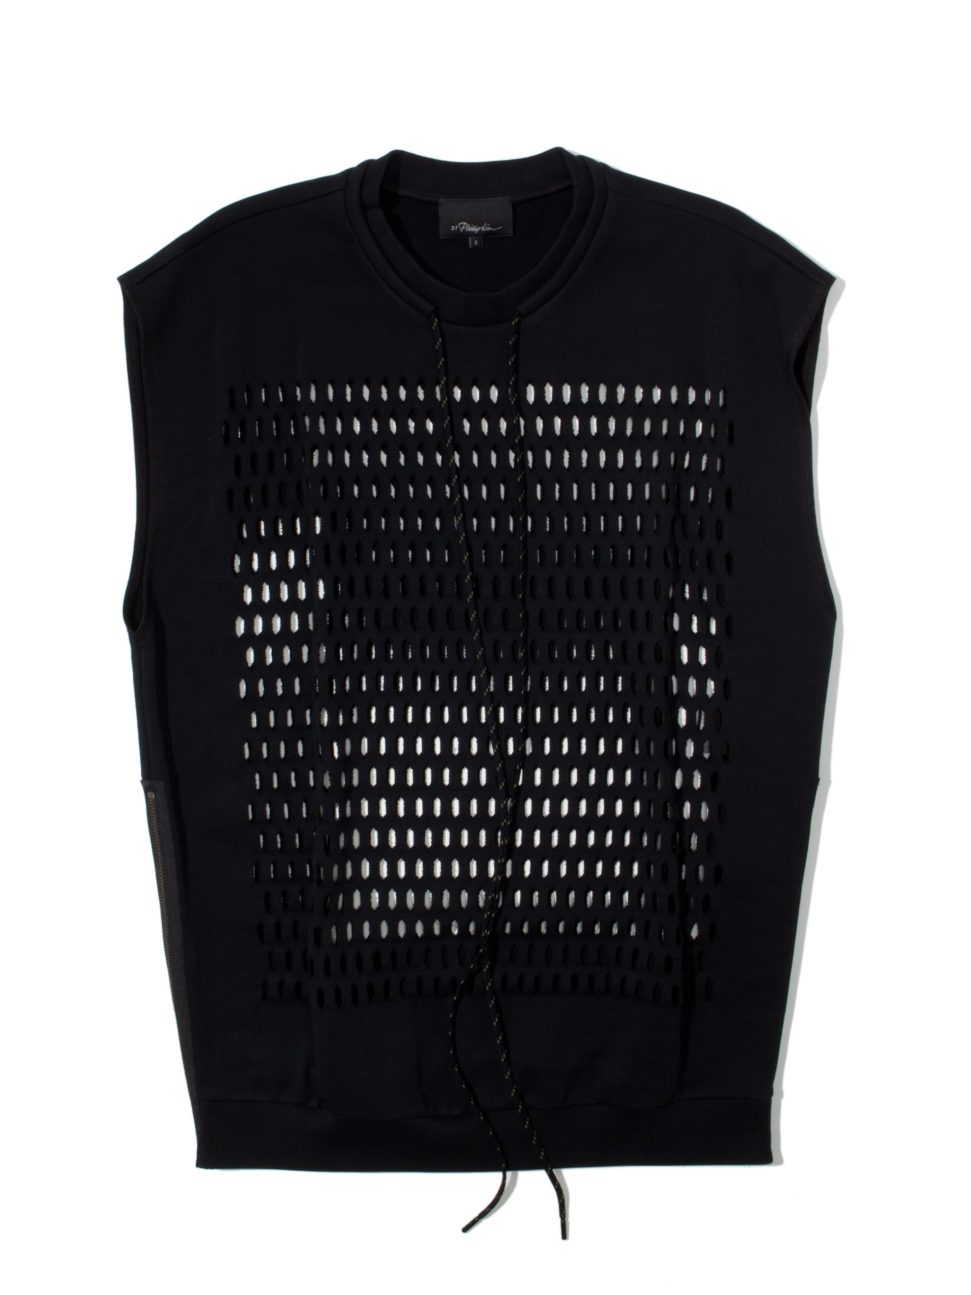 3.1 Phillip Lim Side Zipper Laser Cut Tank